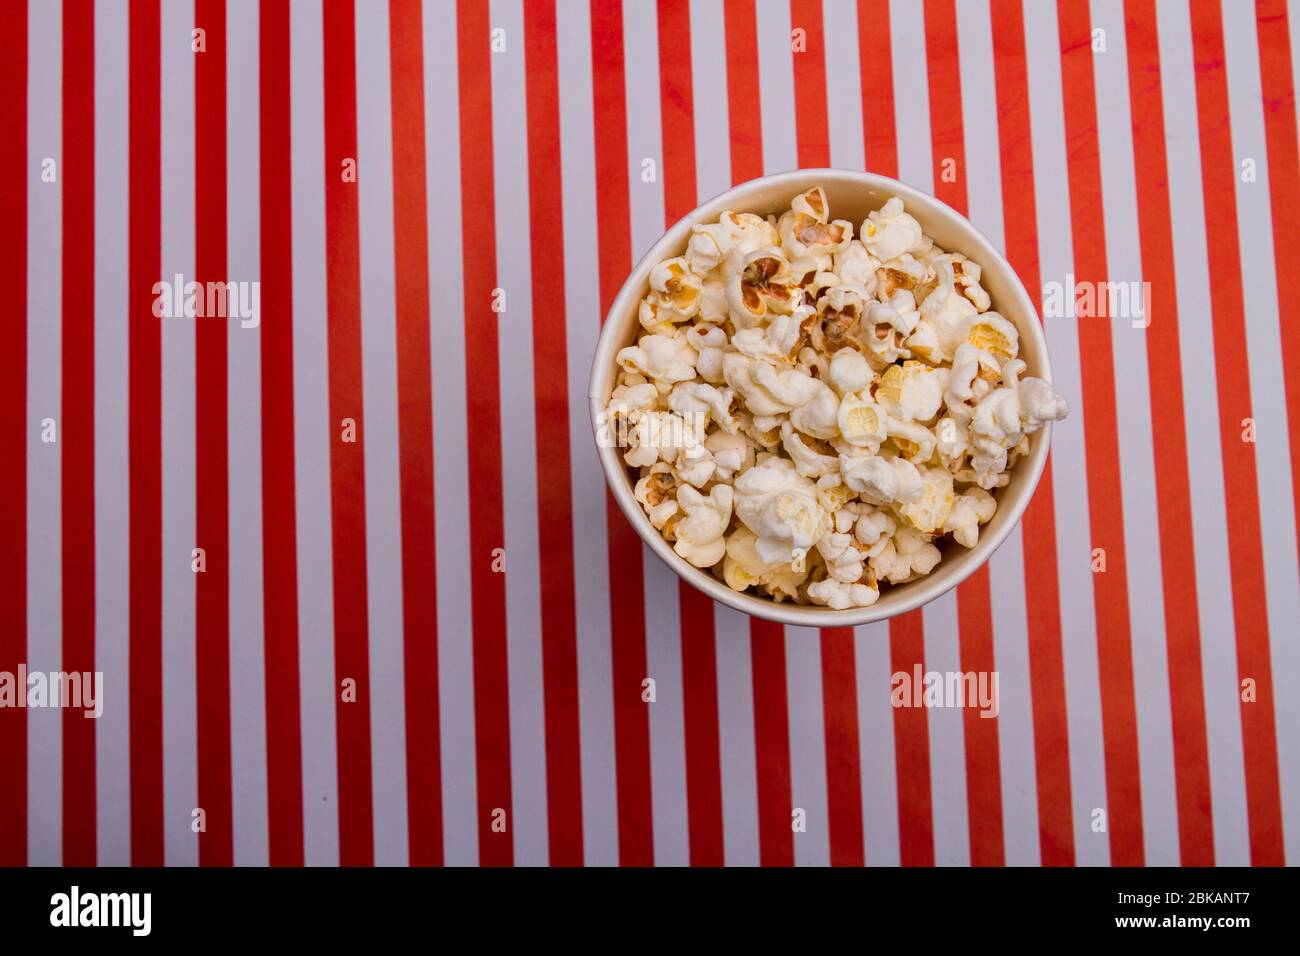 Top view of popcorn in bowl on striped background Stock Photo